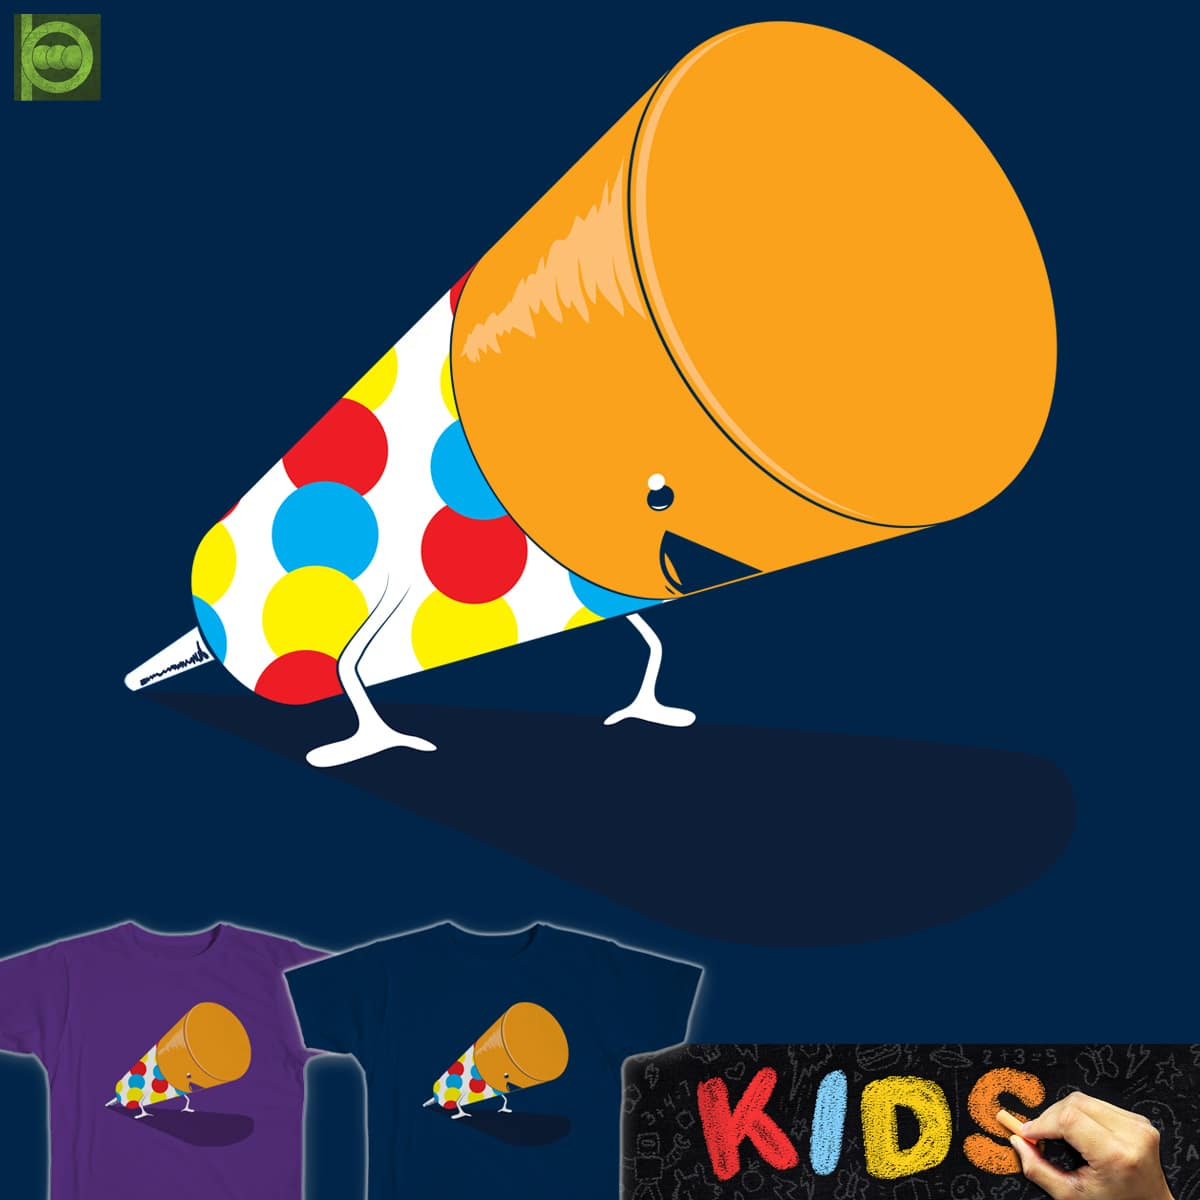 PUSH-UP by BeanePod and rossmat8 on Threadless